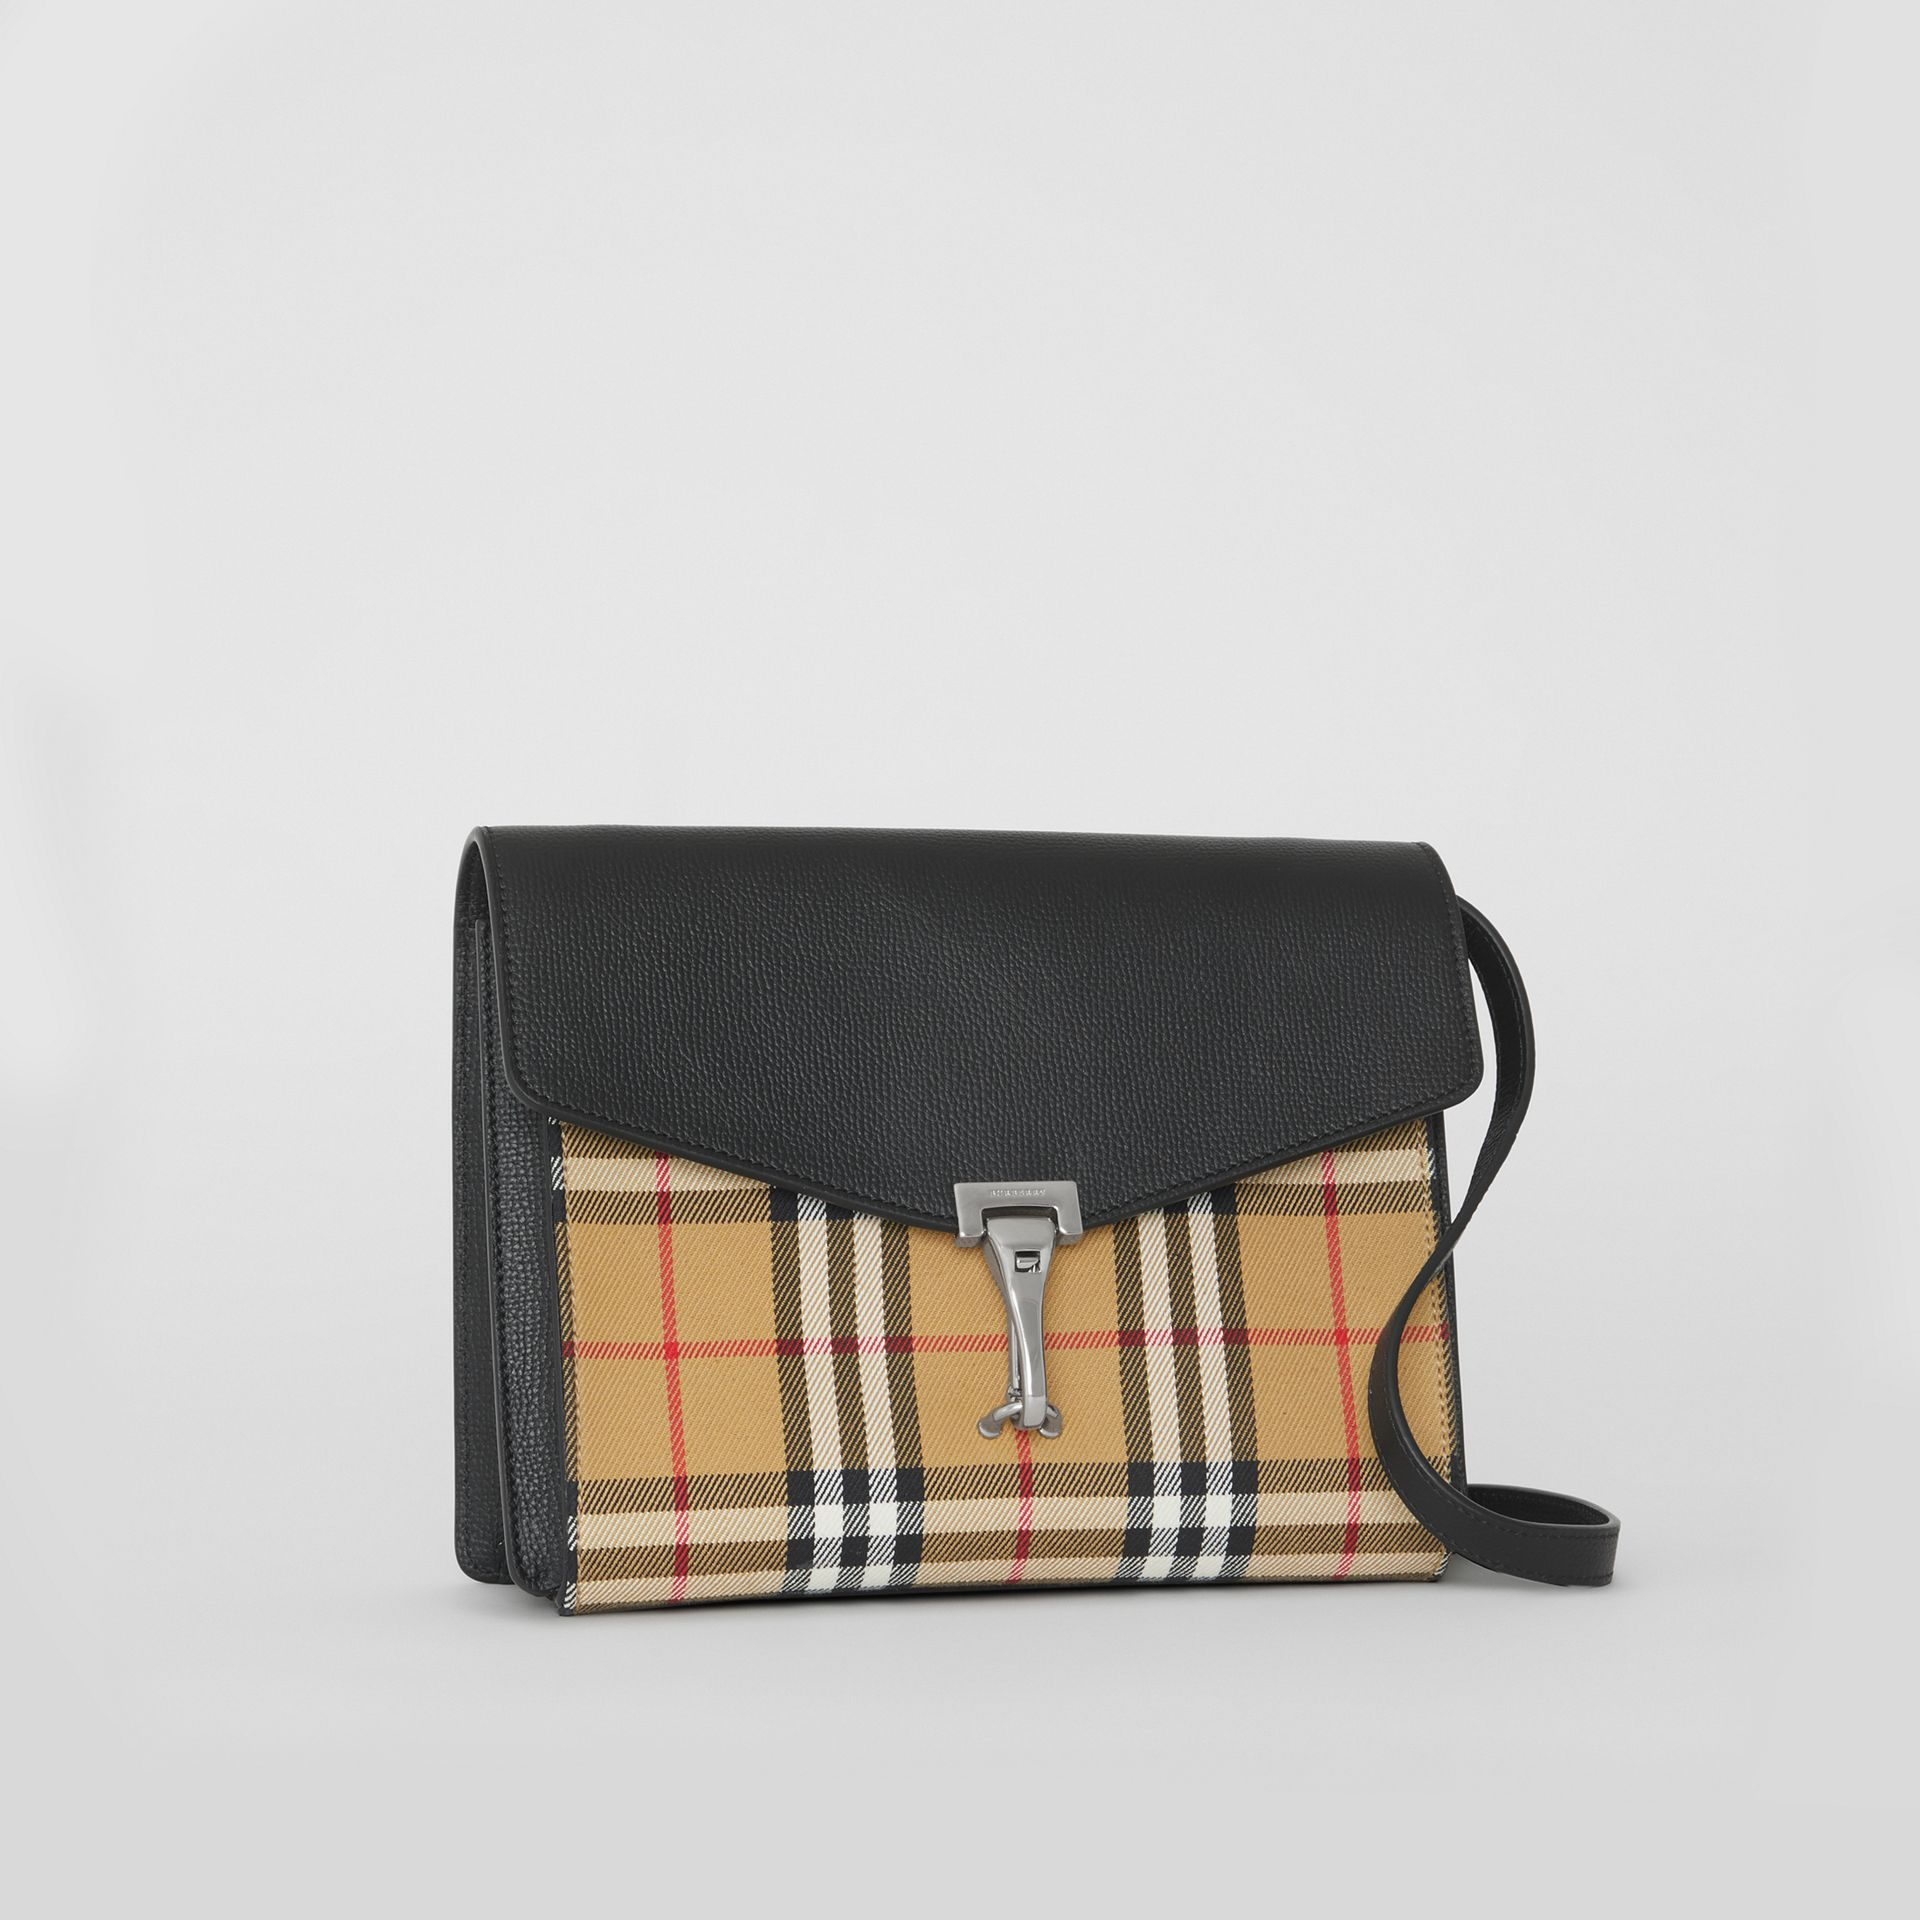 Small Vintage Check and Leather Crossbody Bag in Black - Women | Burberry - gallery image 6